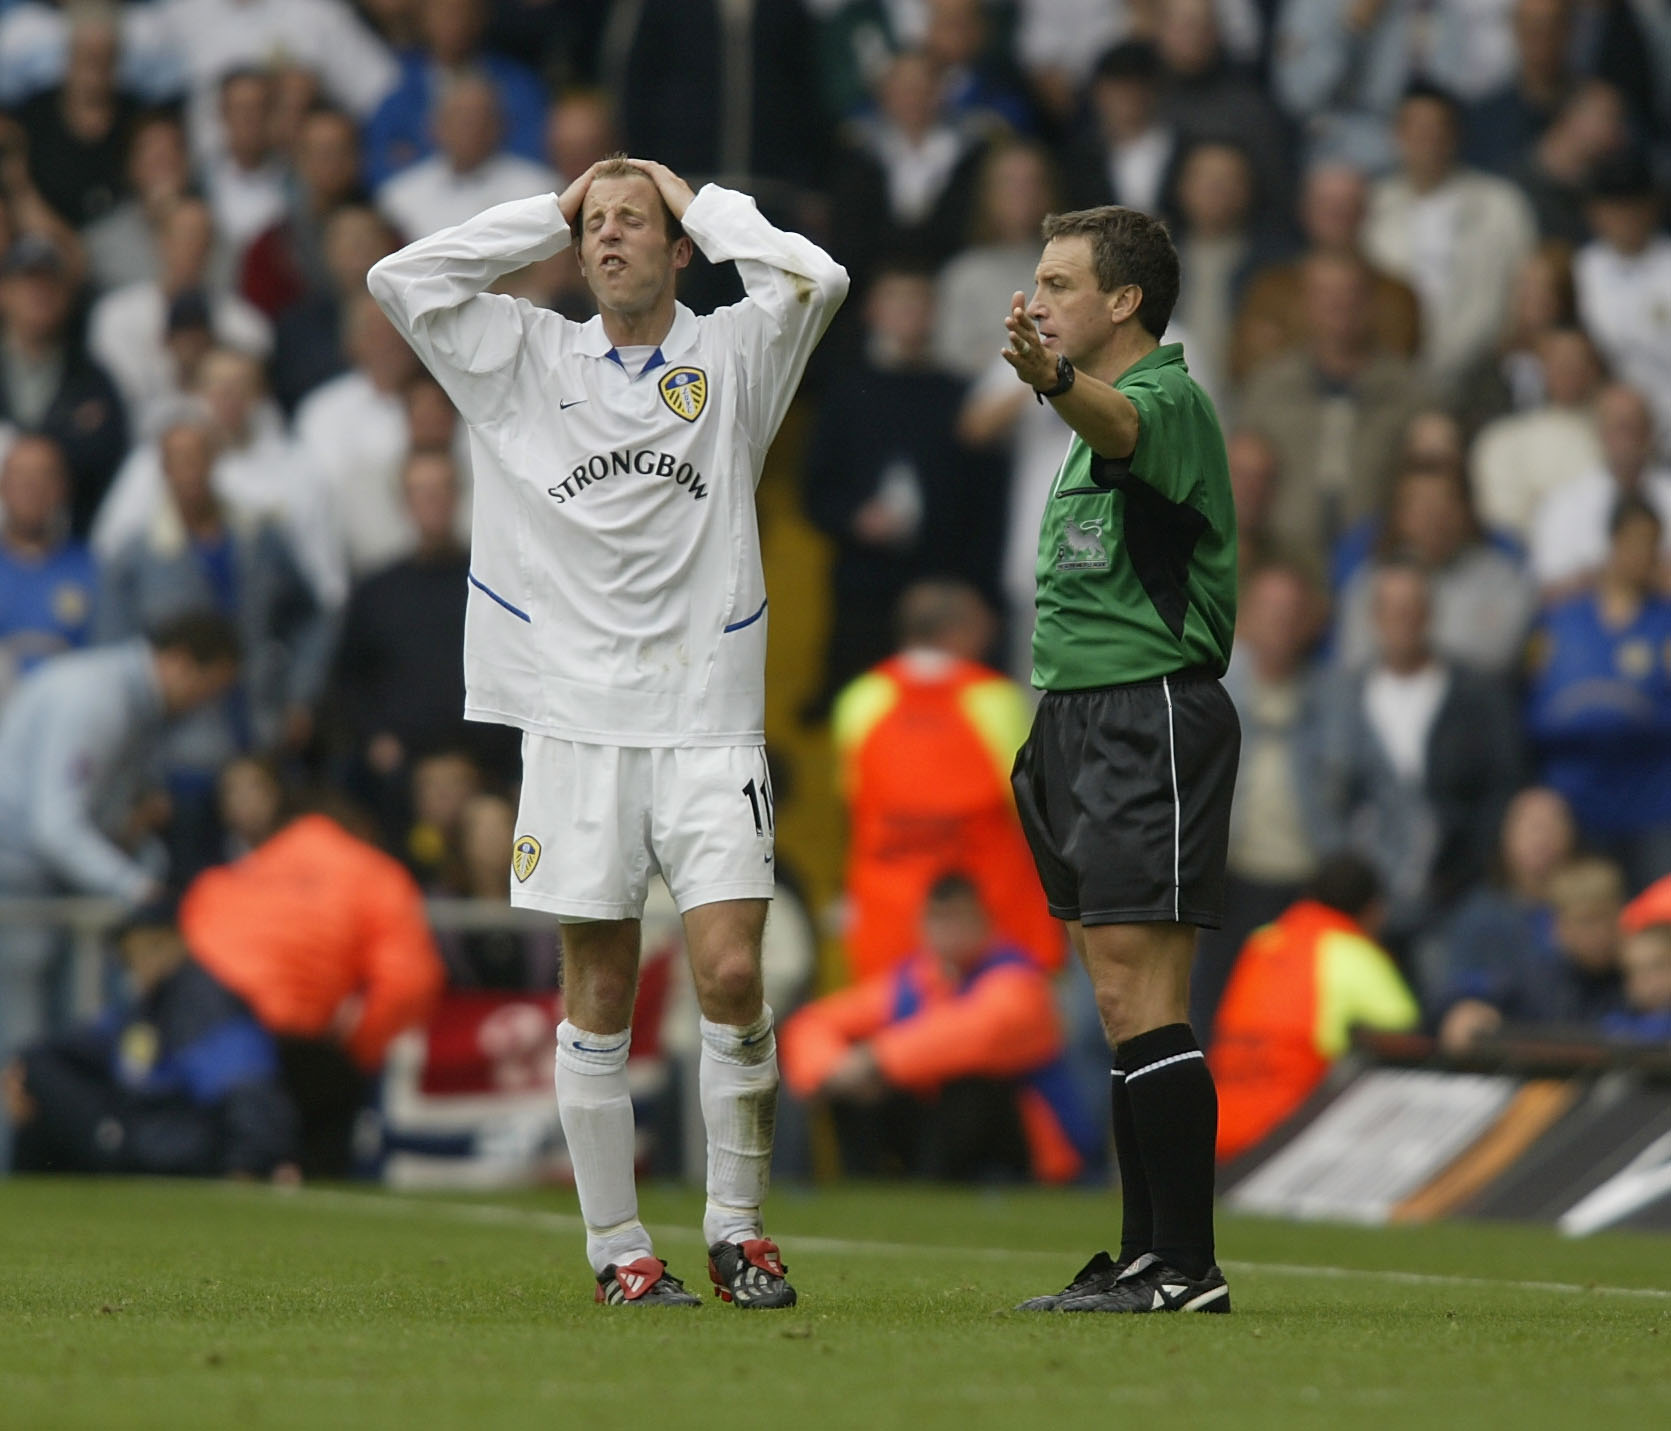 LEEDS - SEPTEMBER 28:  Lee Bowyer of Leeds United pleads with the assisstant referee after fouling Pascal Cynan of Arsenal during the FA Barclaycard Premiership match between Leeds United and Arsenal at Elland Road, Leeds, England on September 28, 2002. (